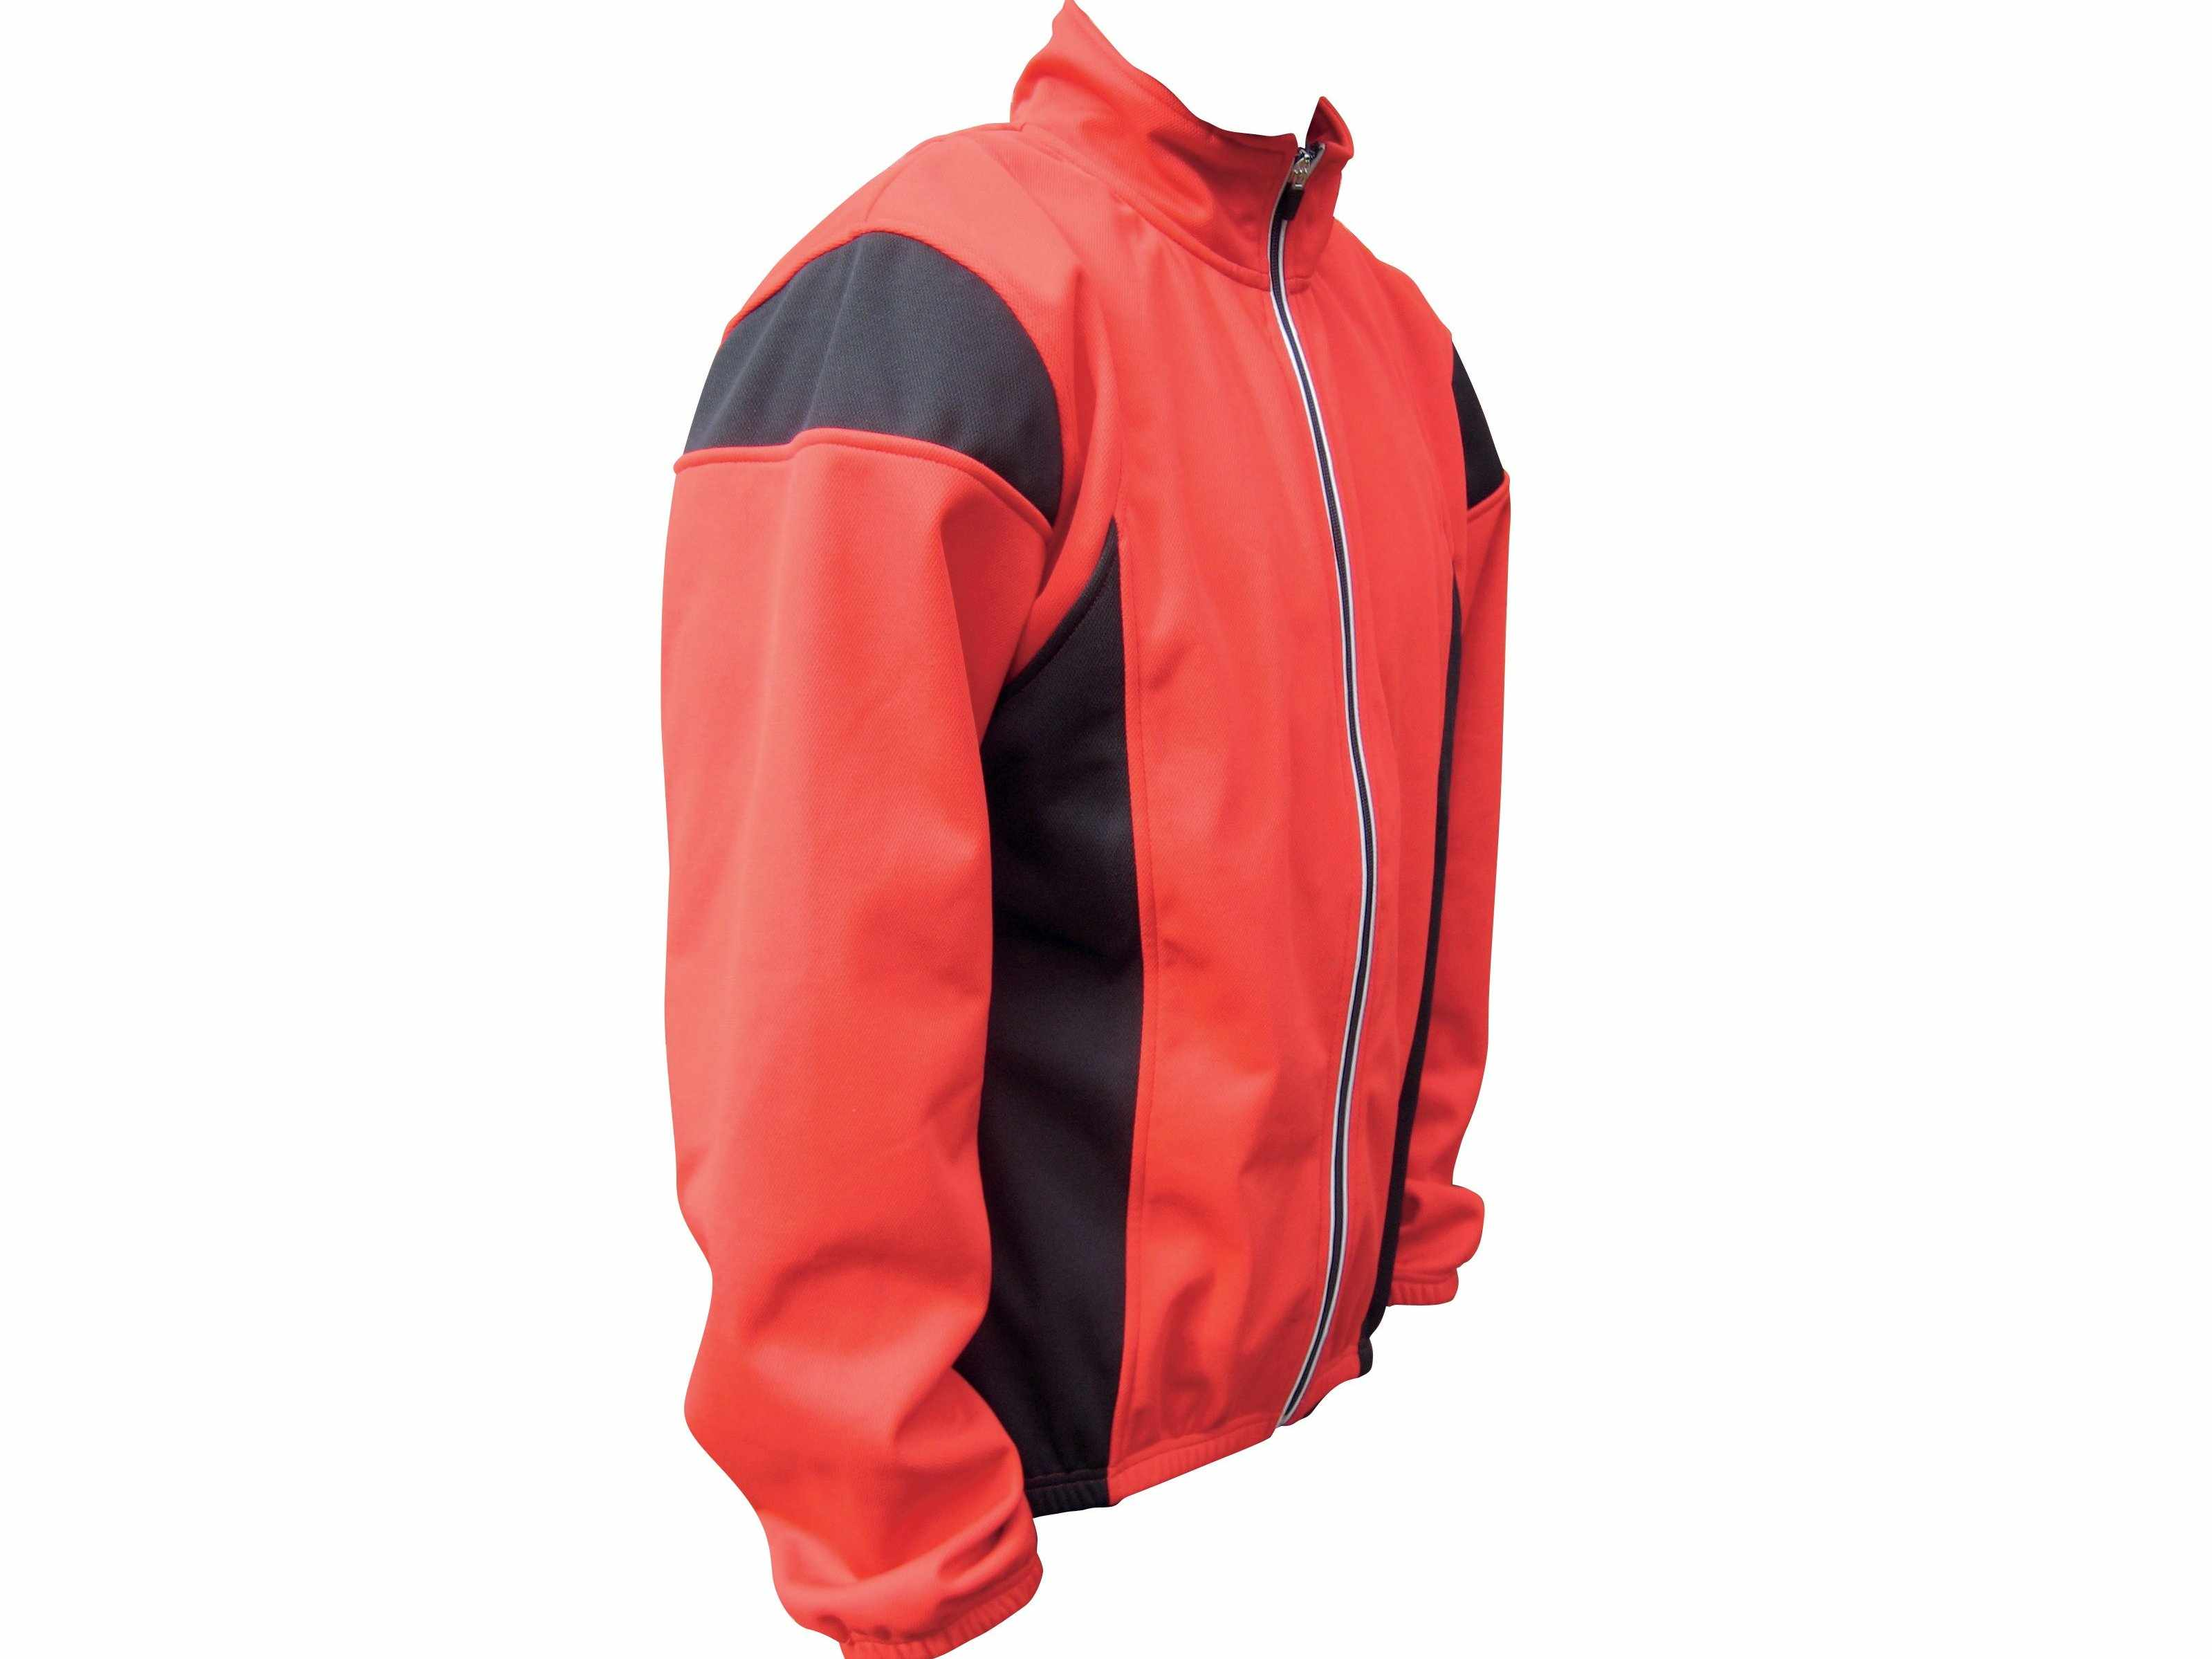 Make sure you try this jacket on before you buy - sizes vary.